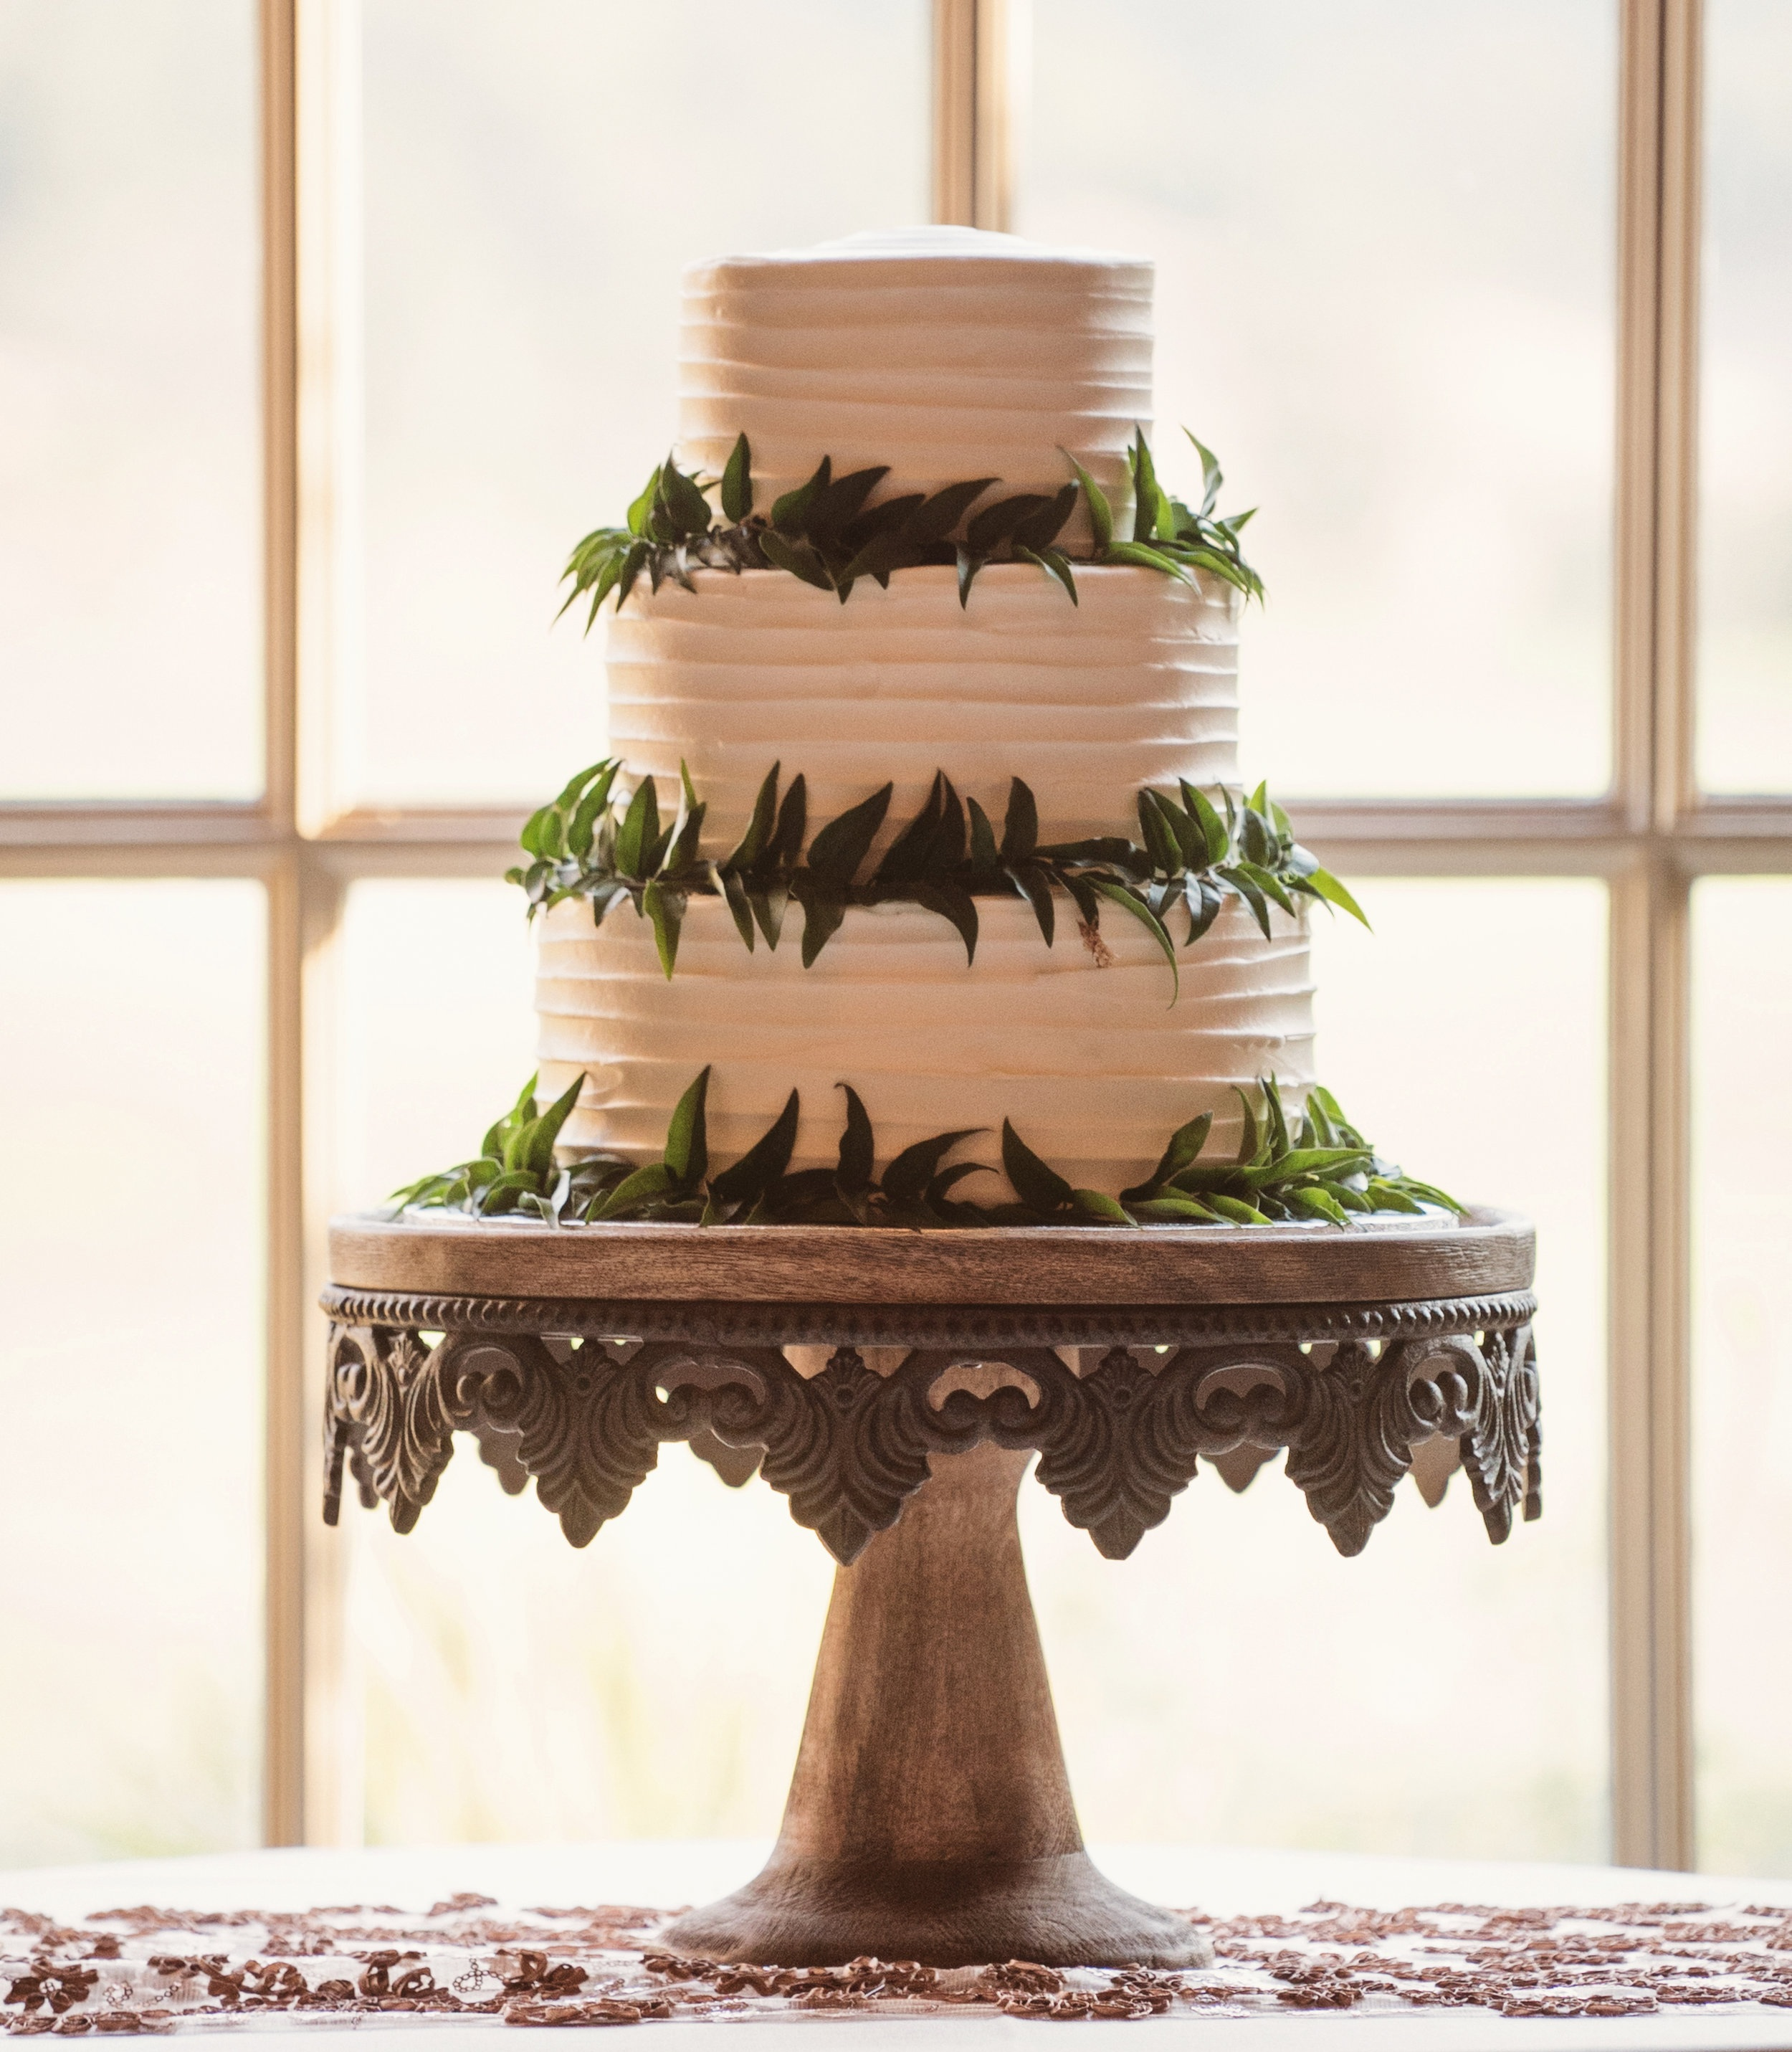 viewpointevents.com | Cake stand for rent in California | Vintage Chic Rentals for weddings and corporate events